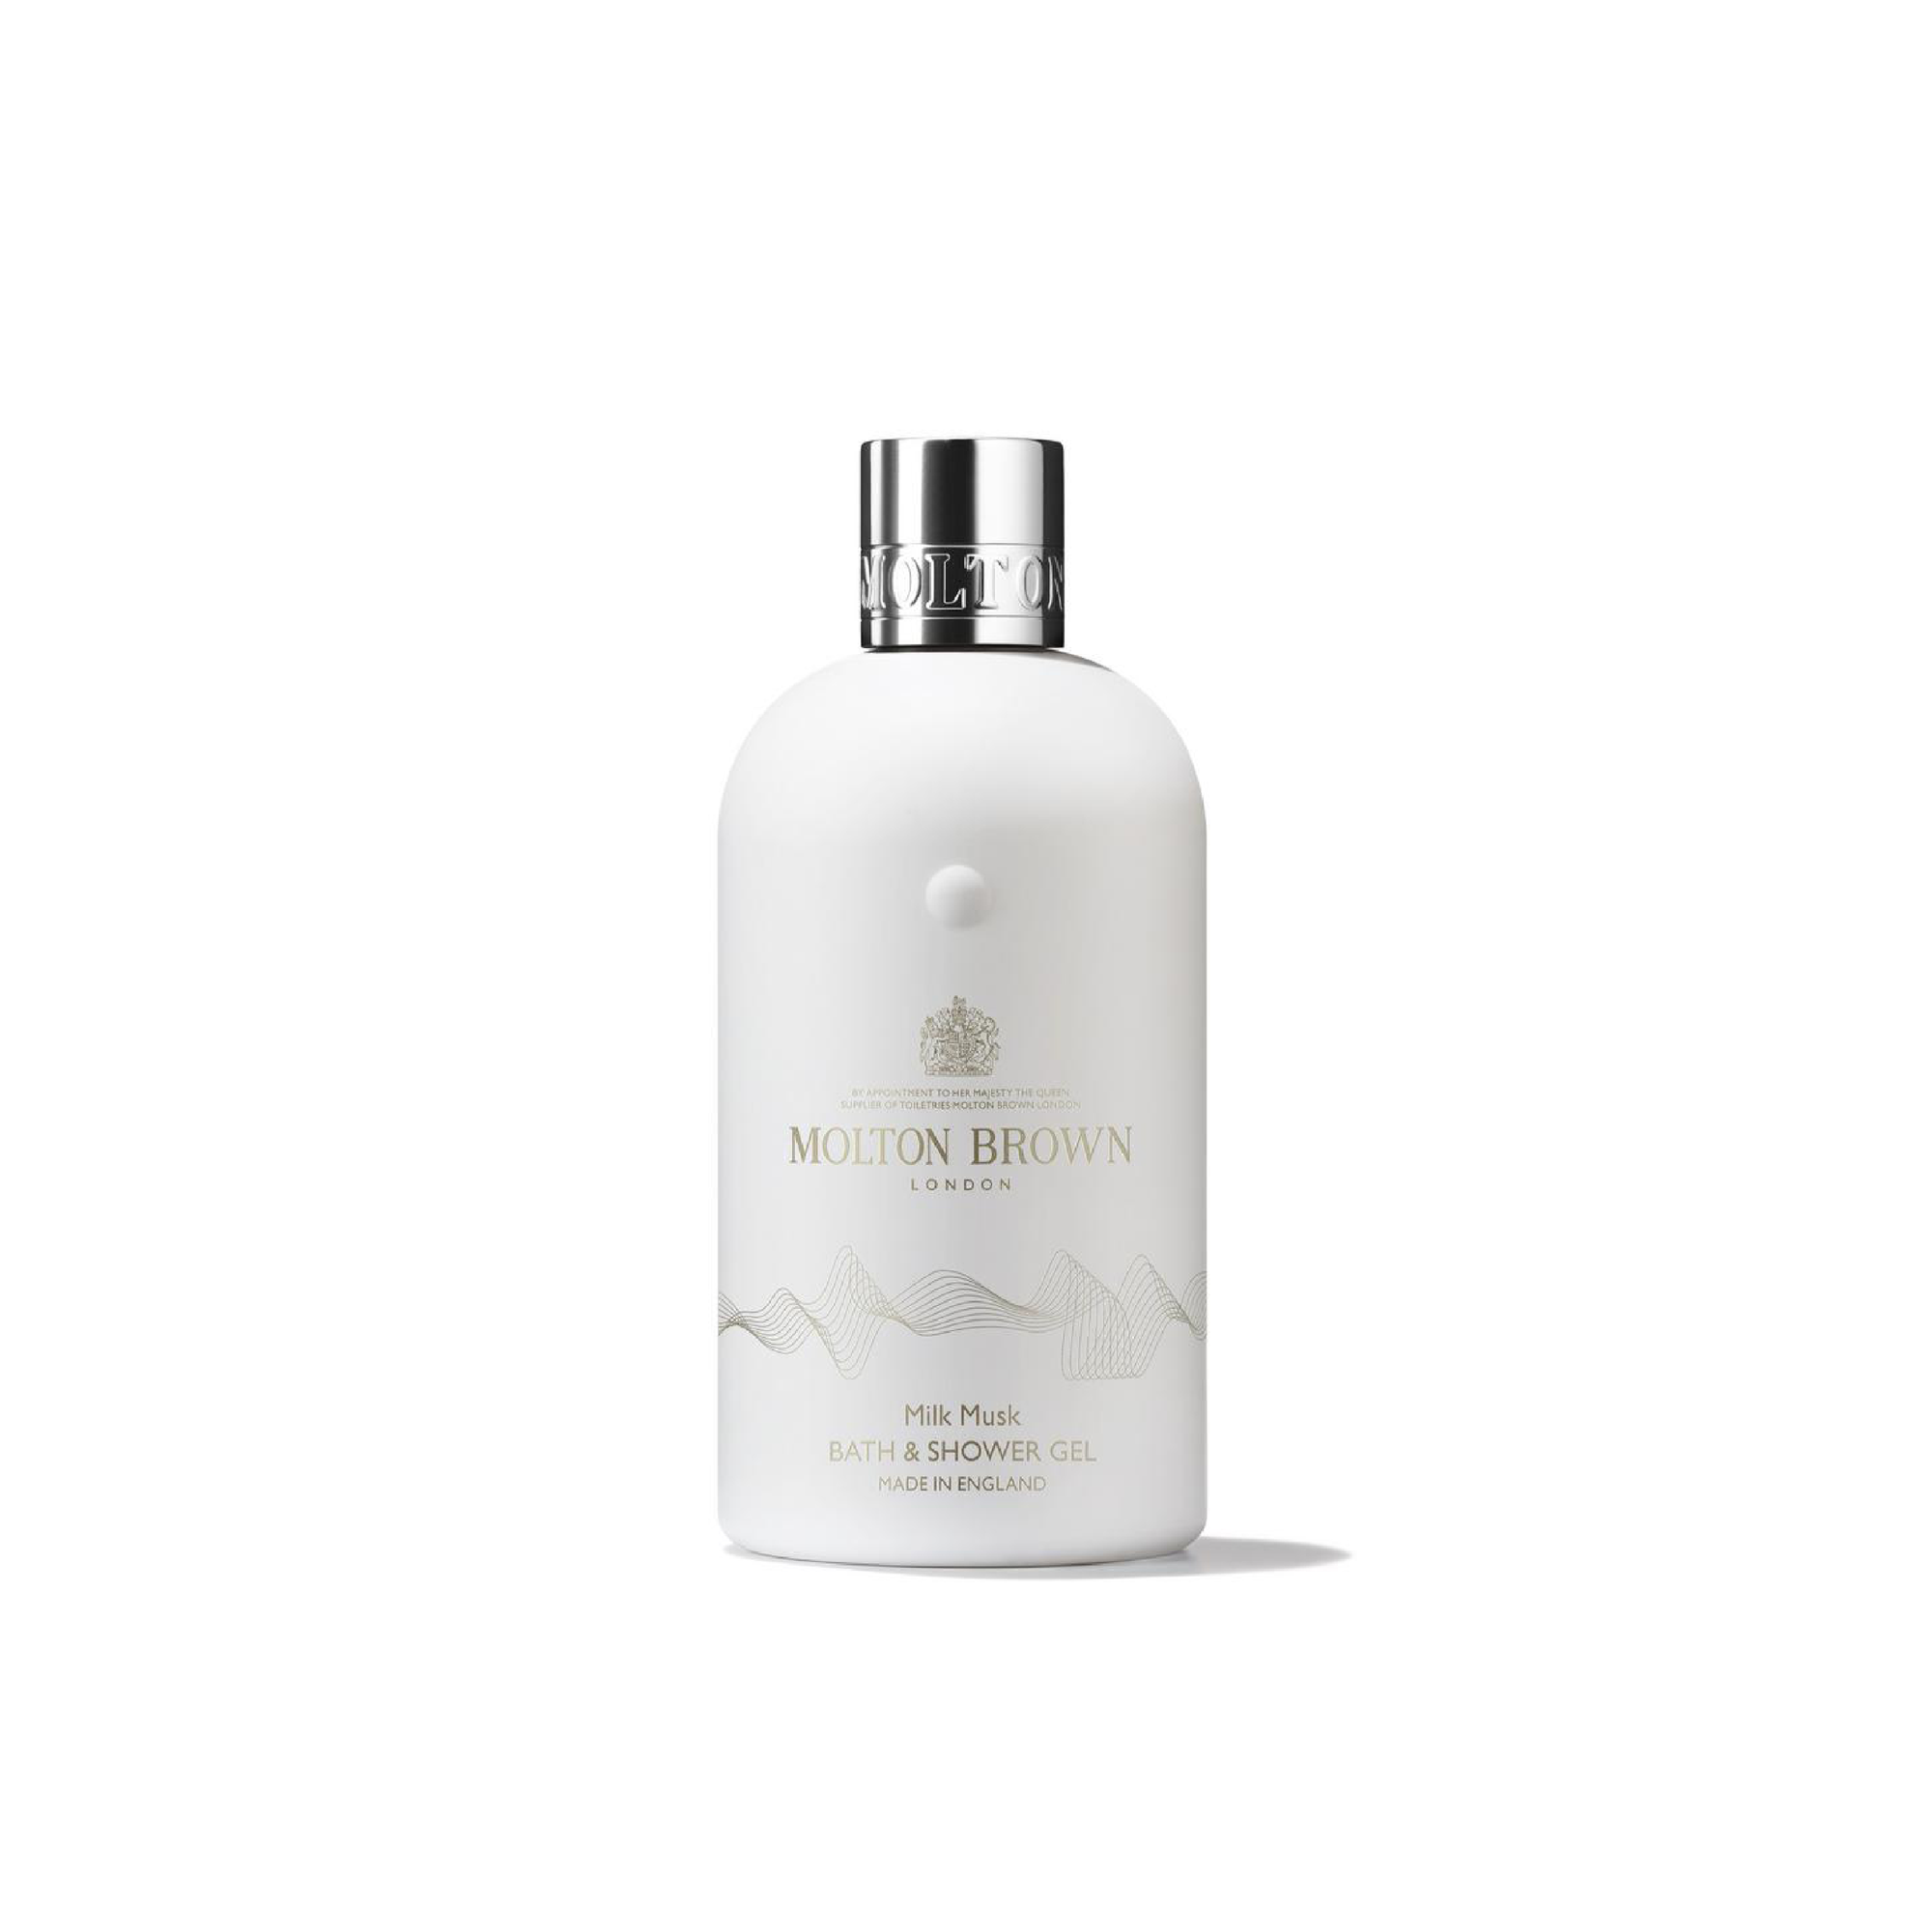 Milk Musk Bath & Shower Gel, Cosmetic, MOLTON BROWN, SUPERCONSCIOUS BERLIN- SUPERCONSCIOUS BERLIN